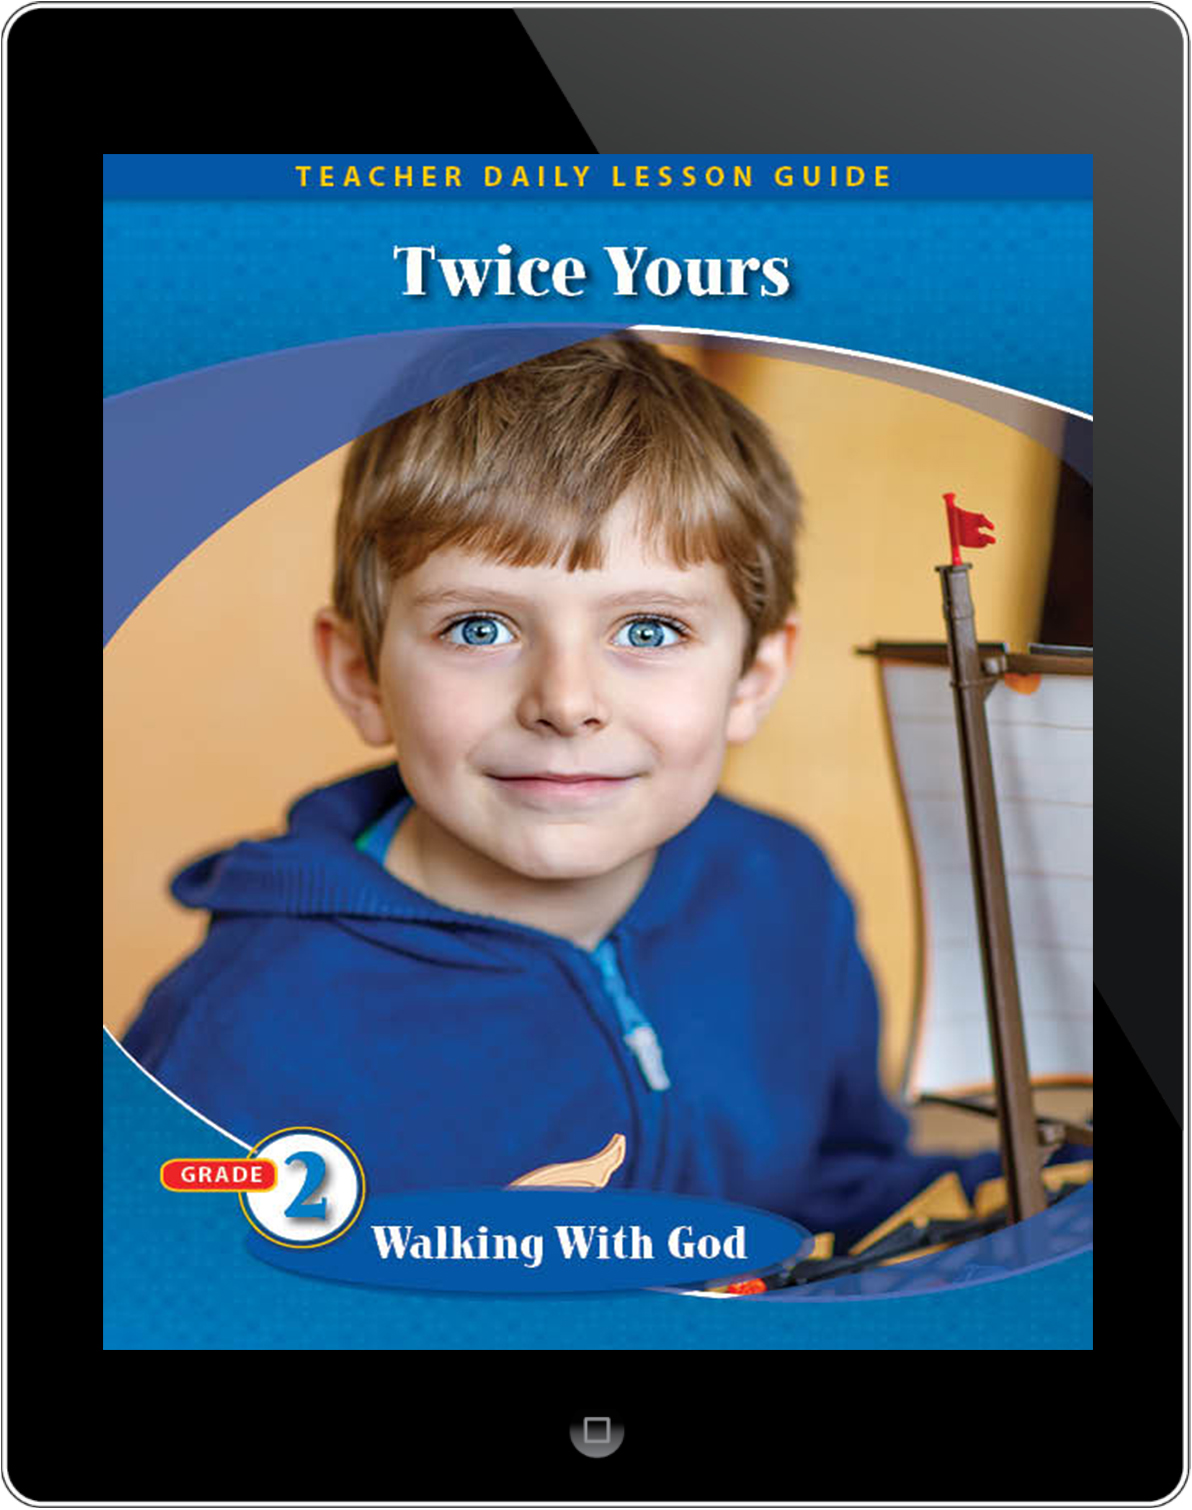 Pathways2.0 Grade 2 Walking with God Unit: Twice Yours Daily Lesson Guide 5 Year License